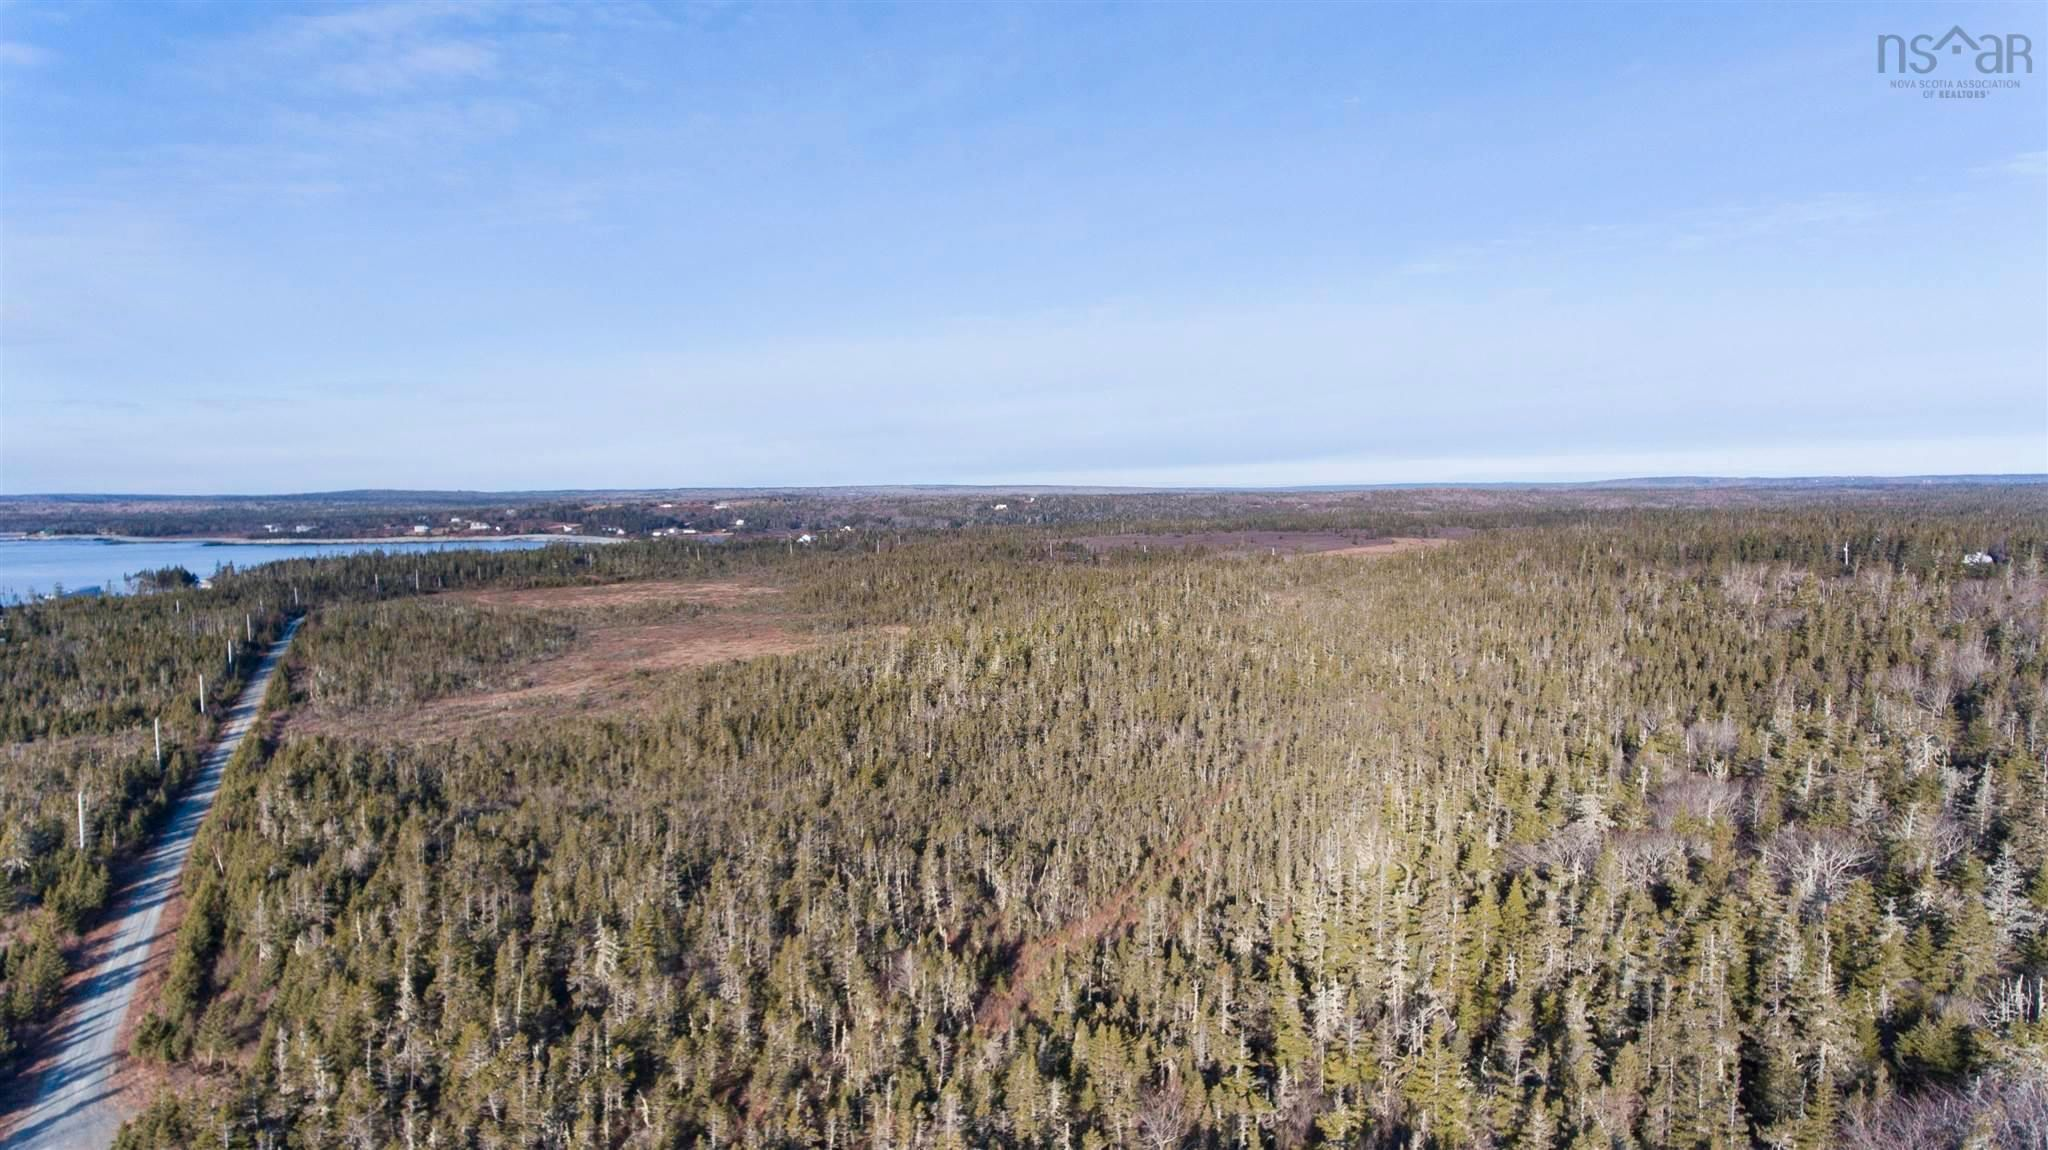 Main Photo: Lot 4-6 Pierce Point Road in Western Head: 406-Queens County Vacant Land for sale (South Shore)  : MLS®# 202125711